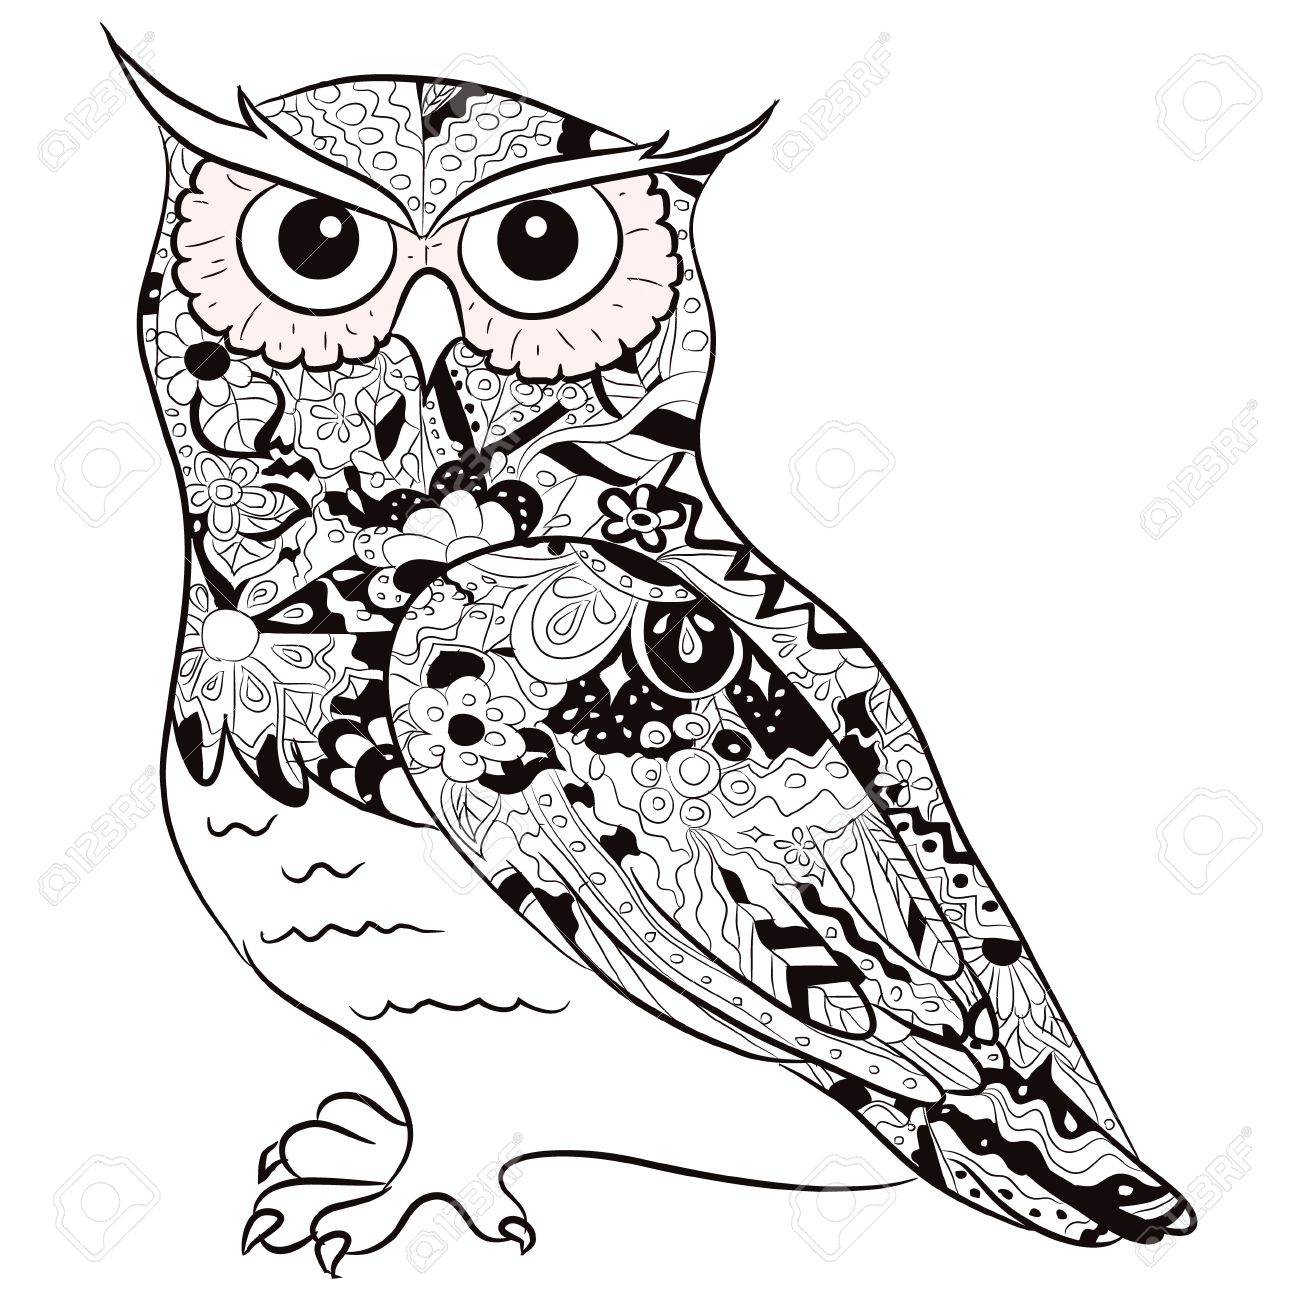 black and white owl royalty free cliparts vectors and stock